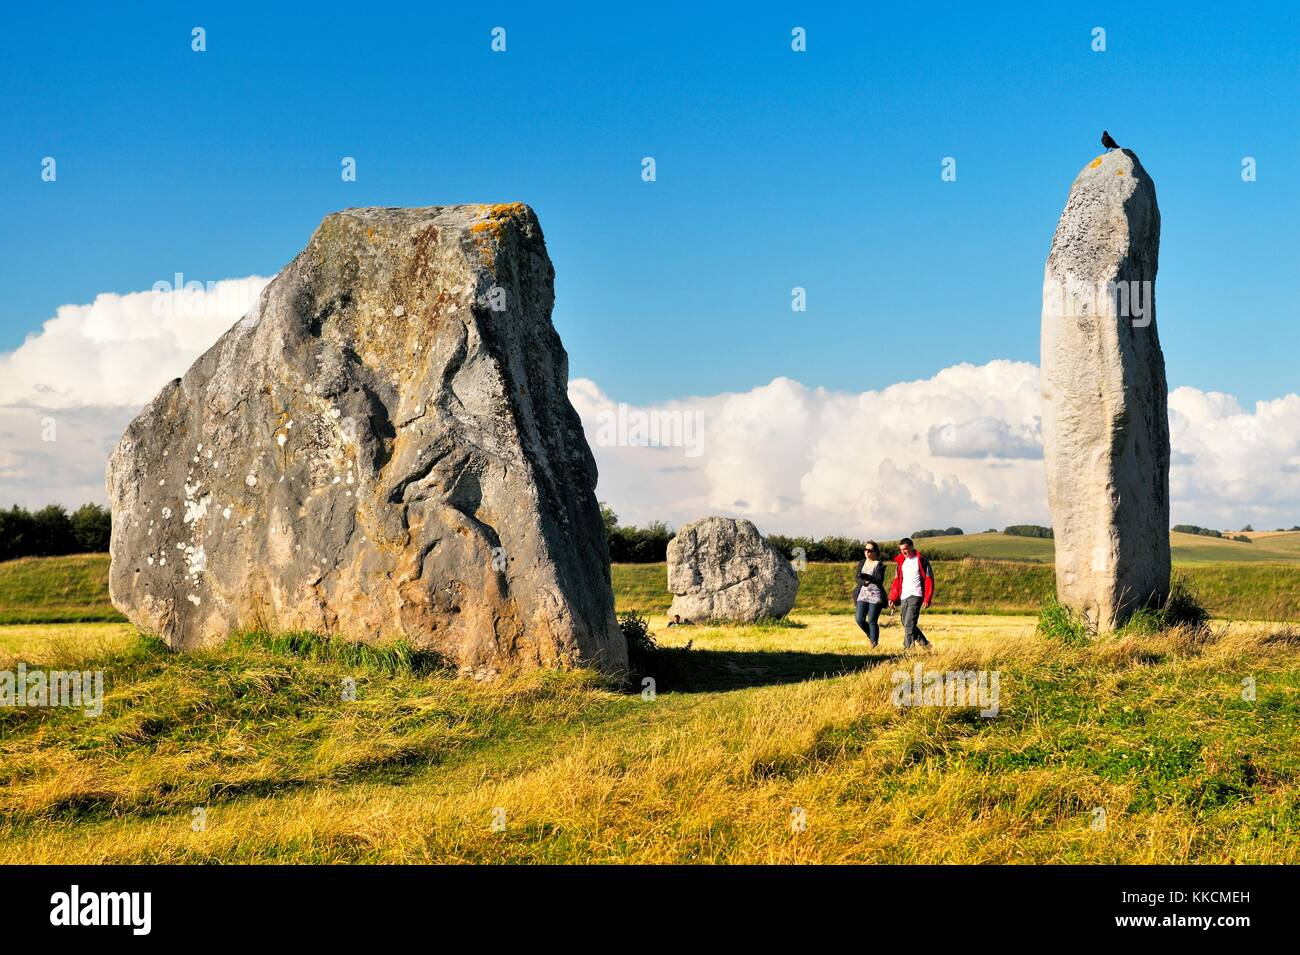 Avebury Neolithic henge and stone circles, Wiltshire, England. 5600 years old. Megaliths of the inner North Circle - Stock Image